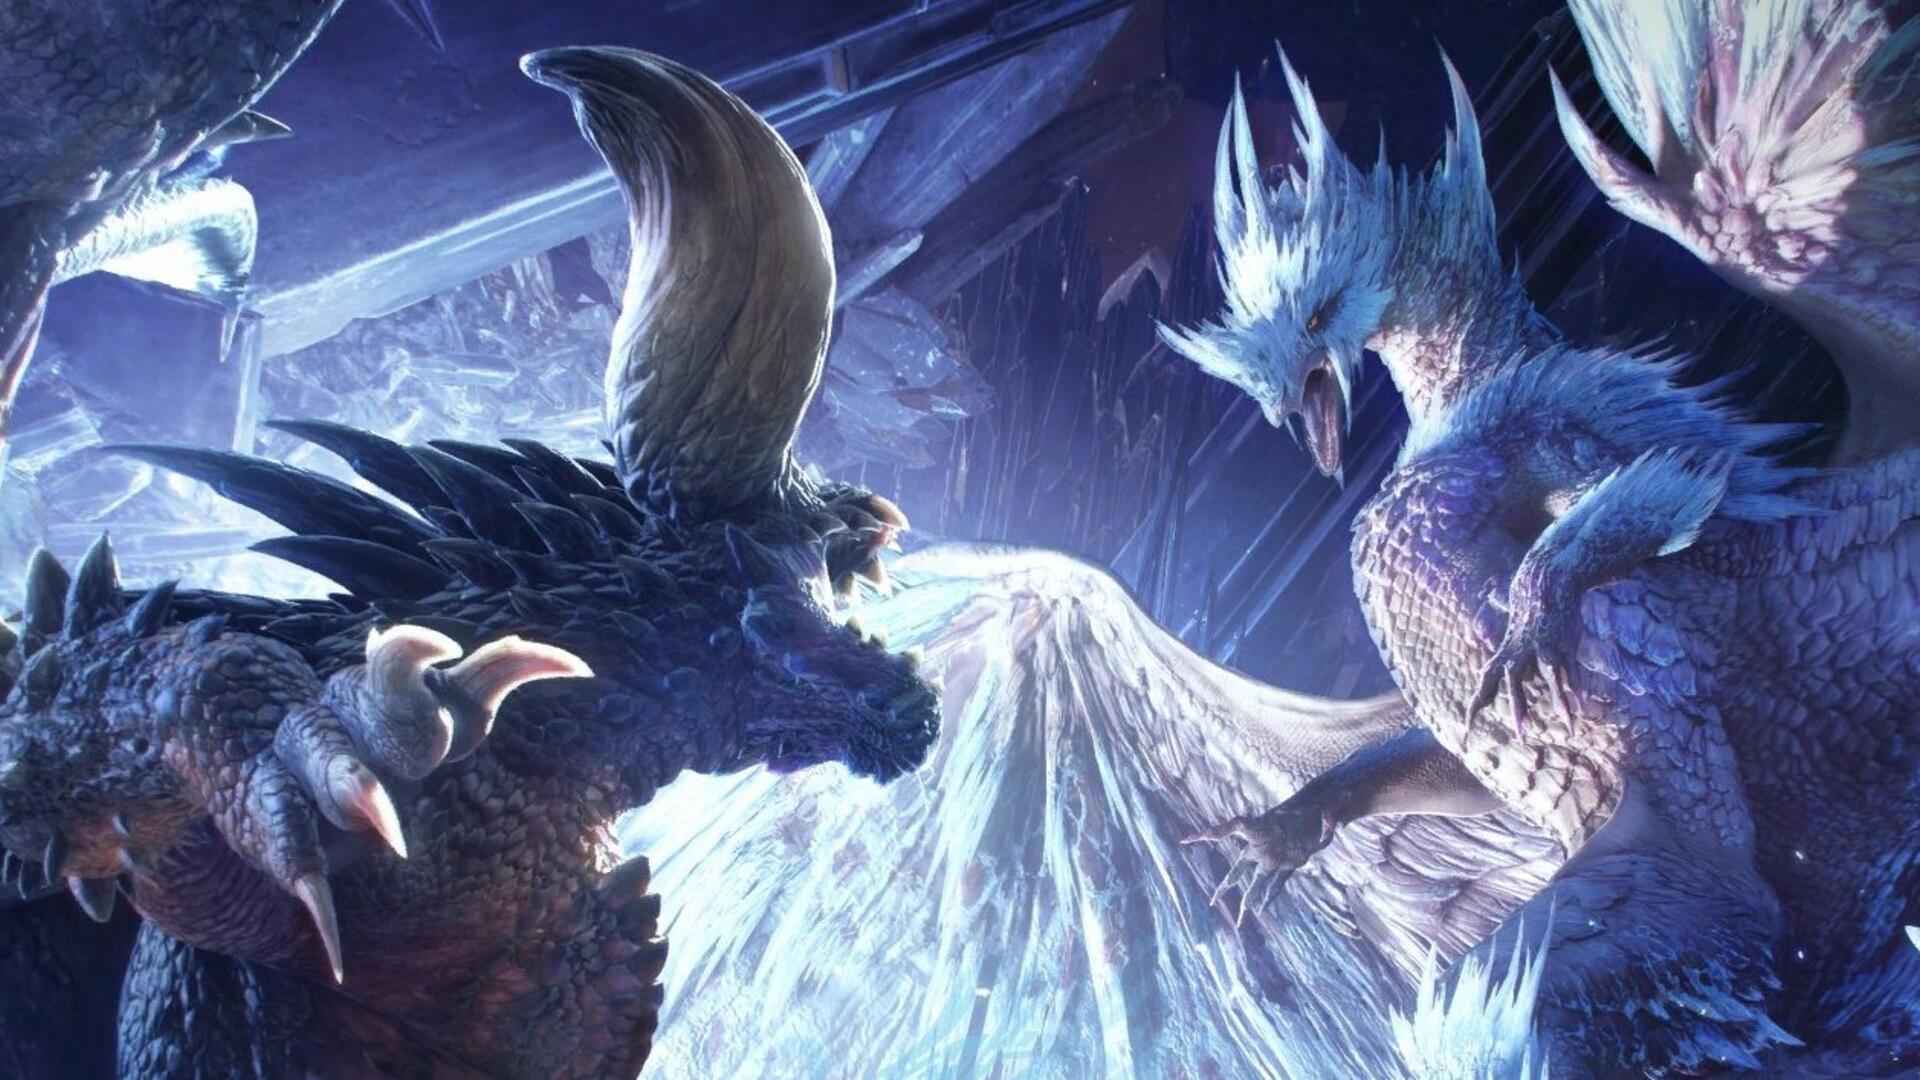 Monster Hunter World Barioth Guide - How to Defeat the Barioth in Iceborne